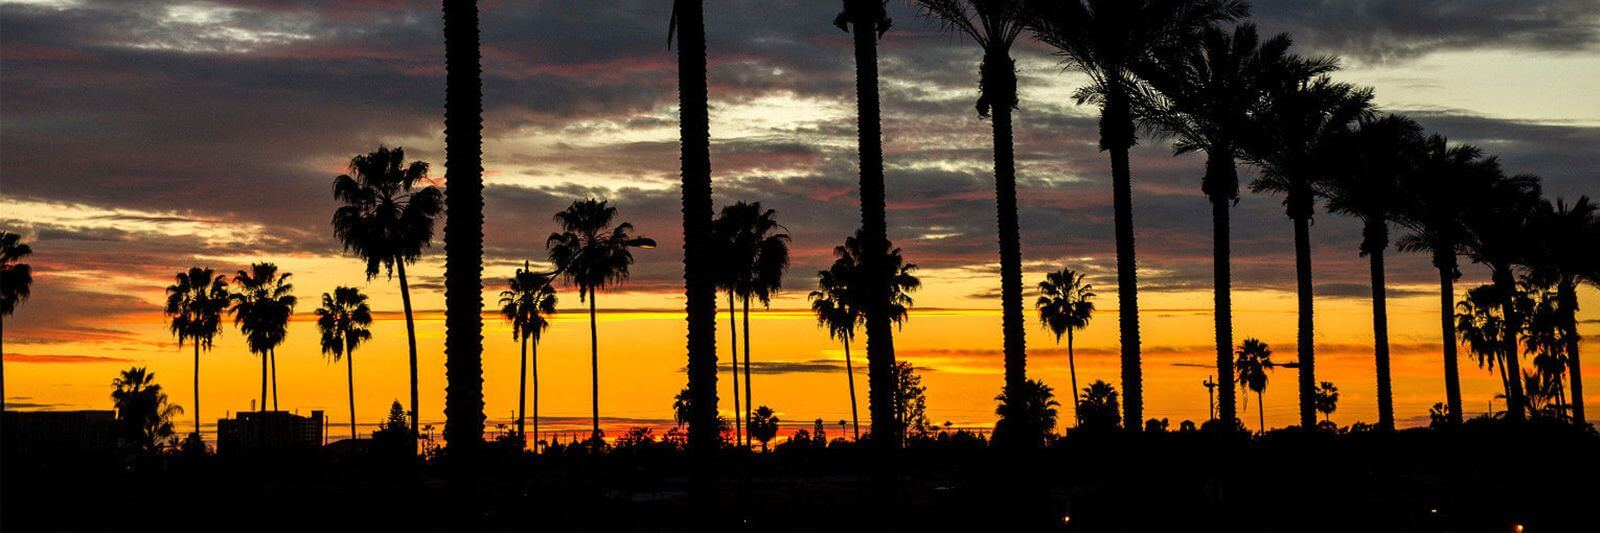 18 Best Things to Do in Anaheim, California